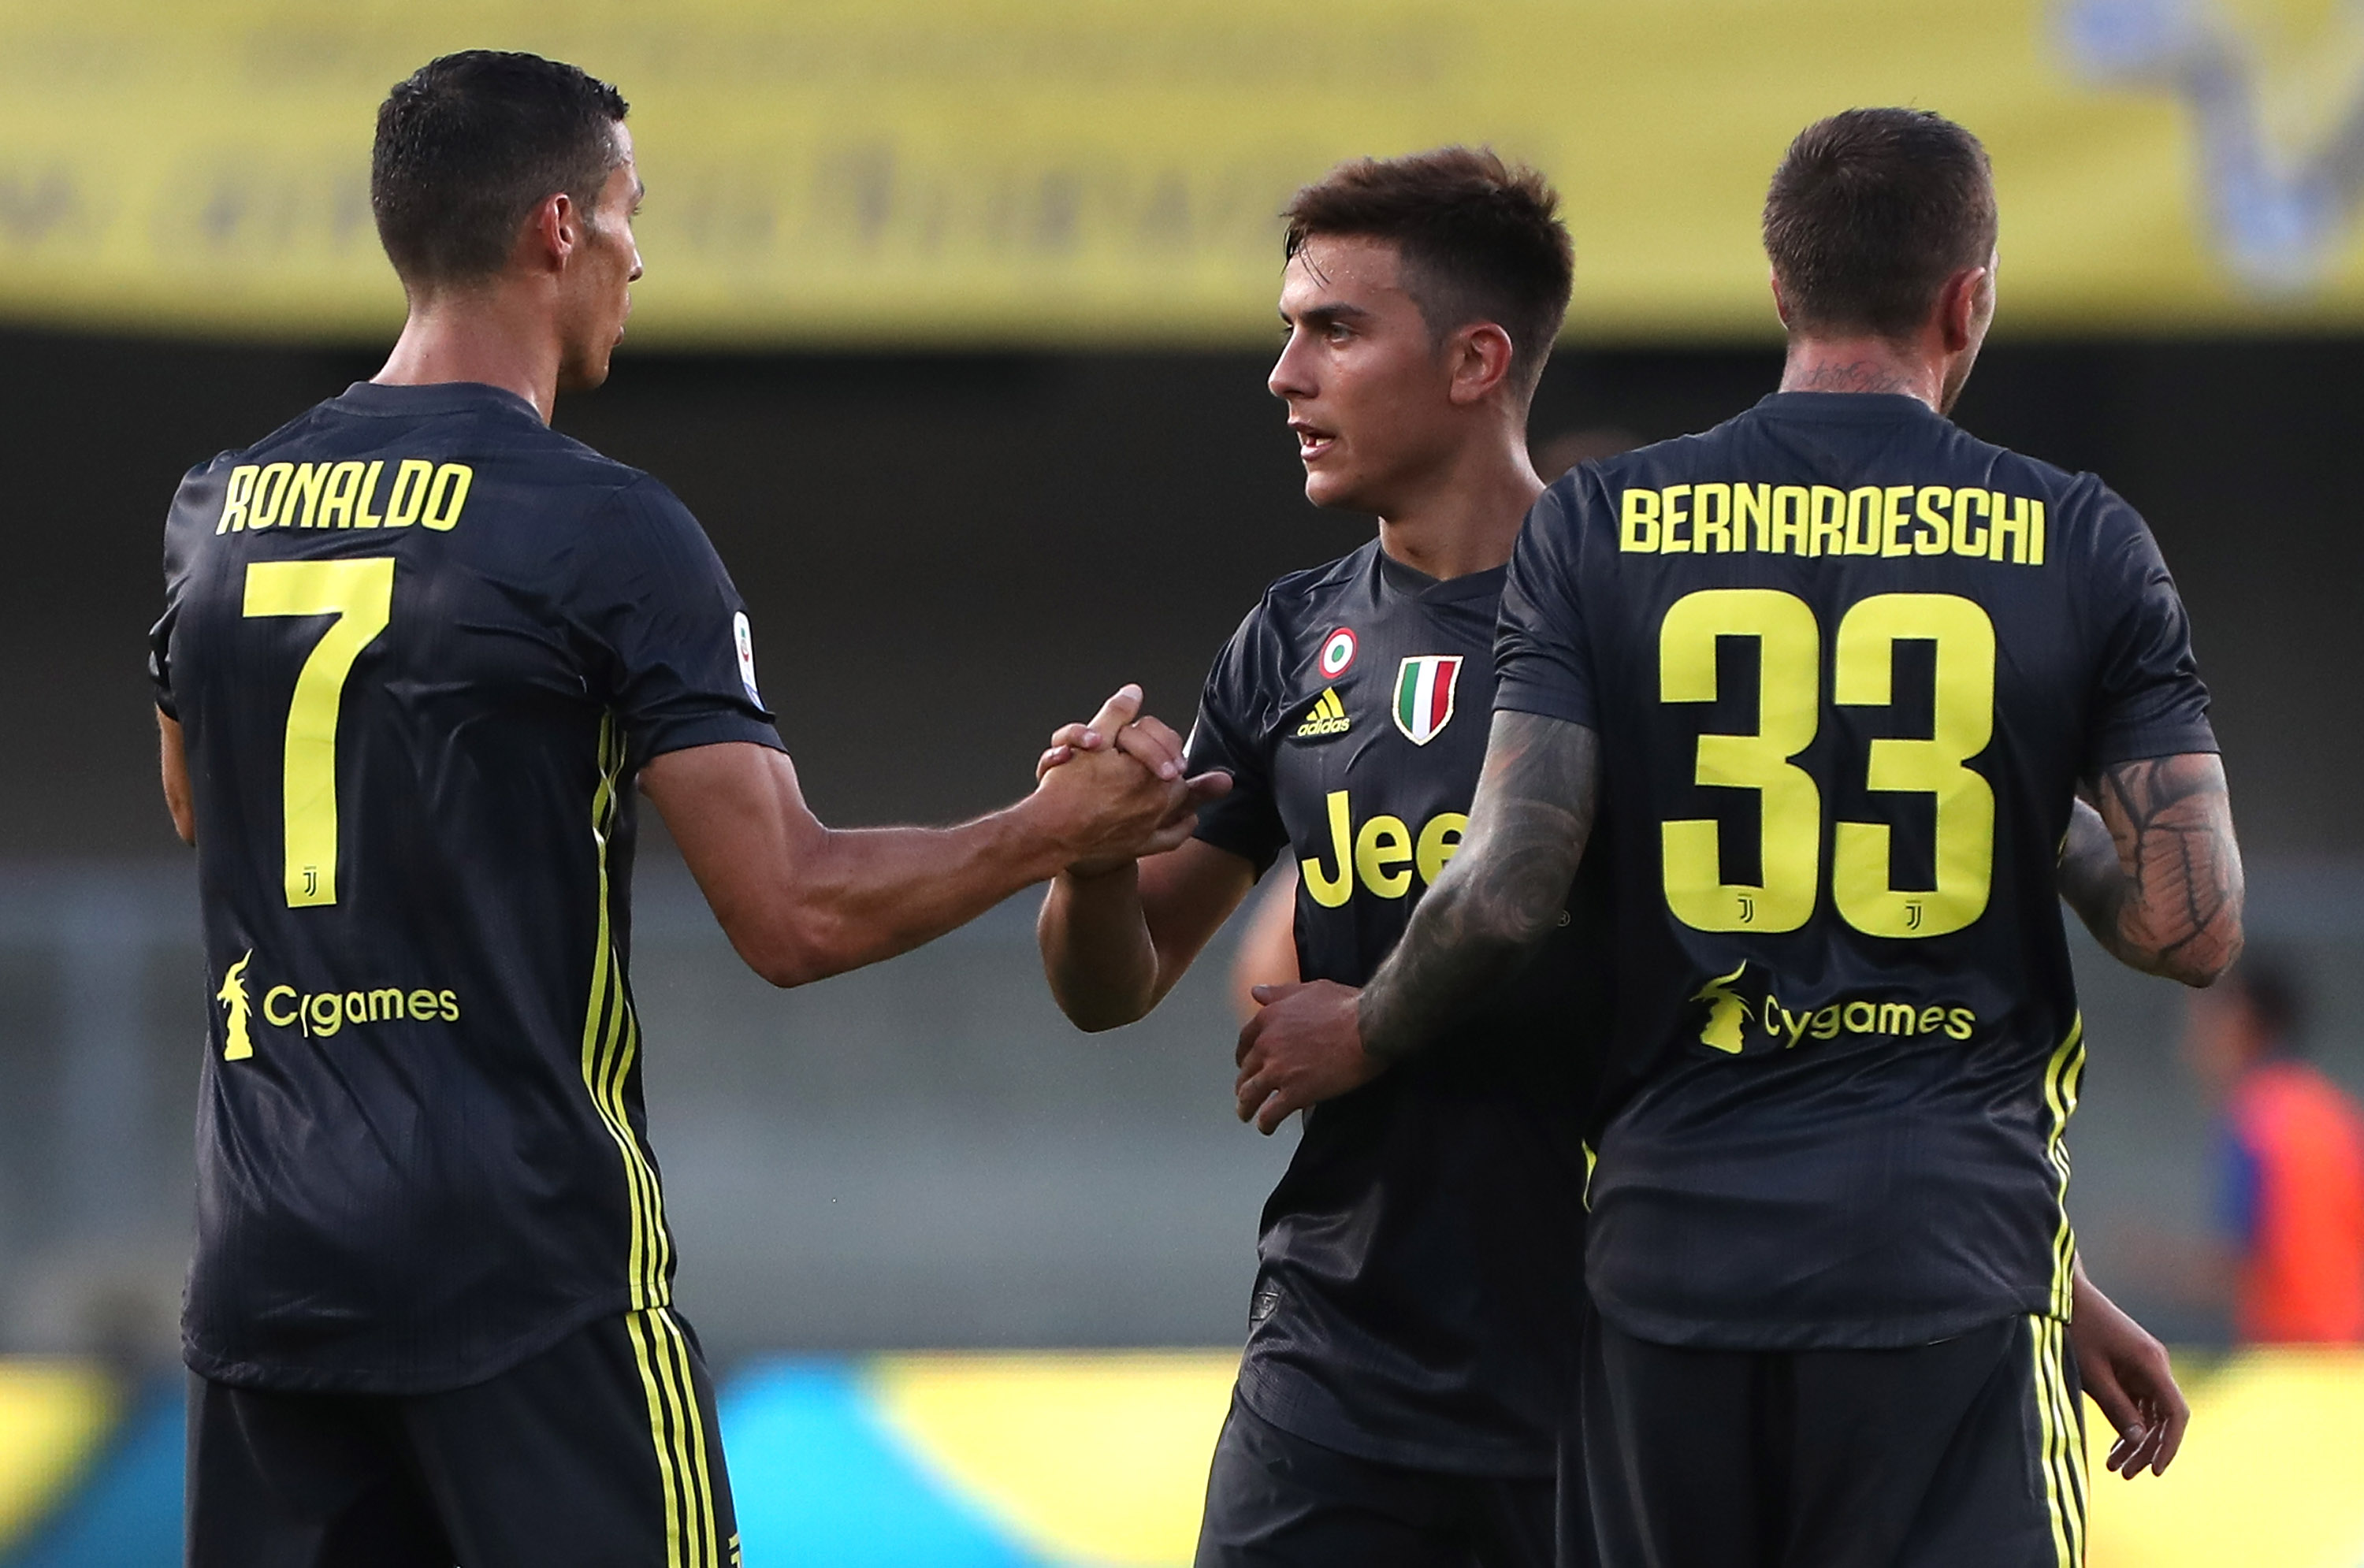 Dybala Happy on Partnership With Ronaldo, Terms It Brilliant